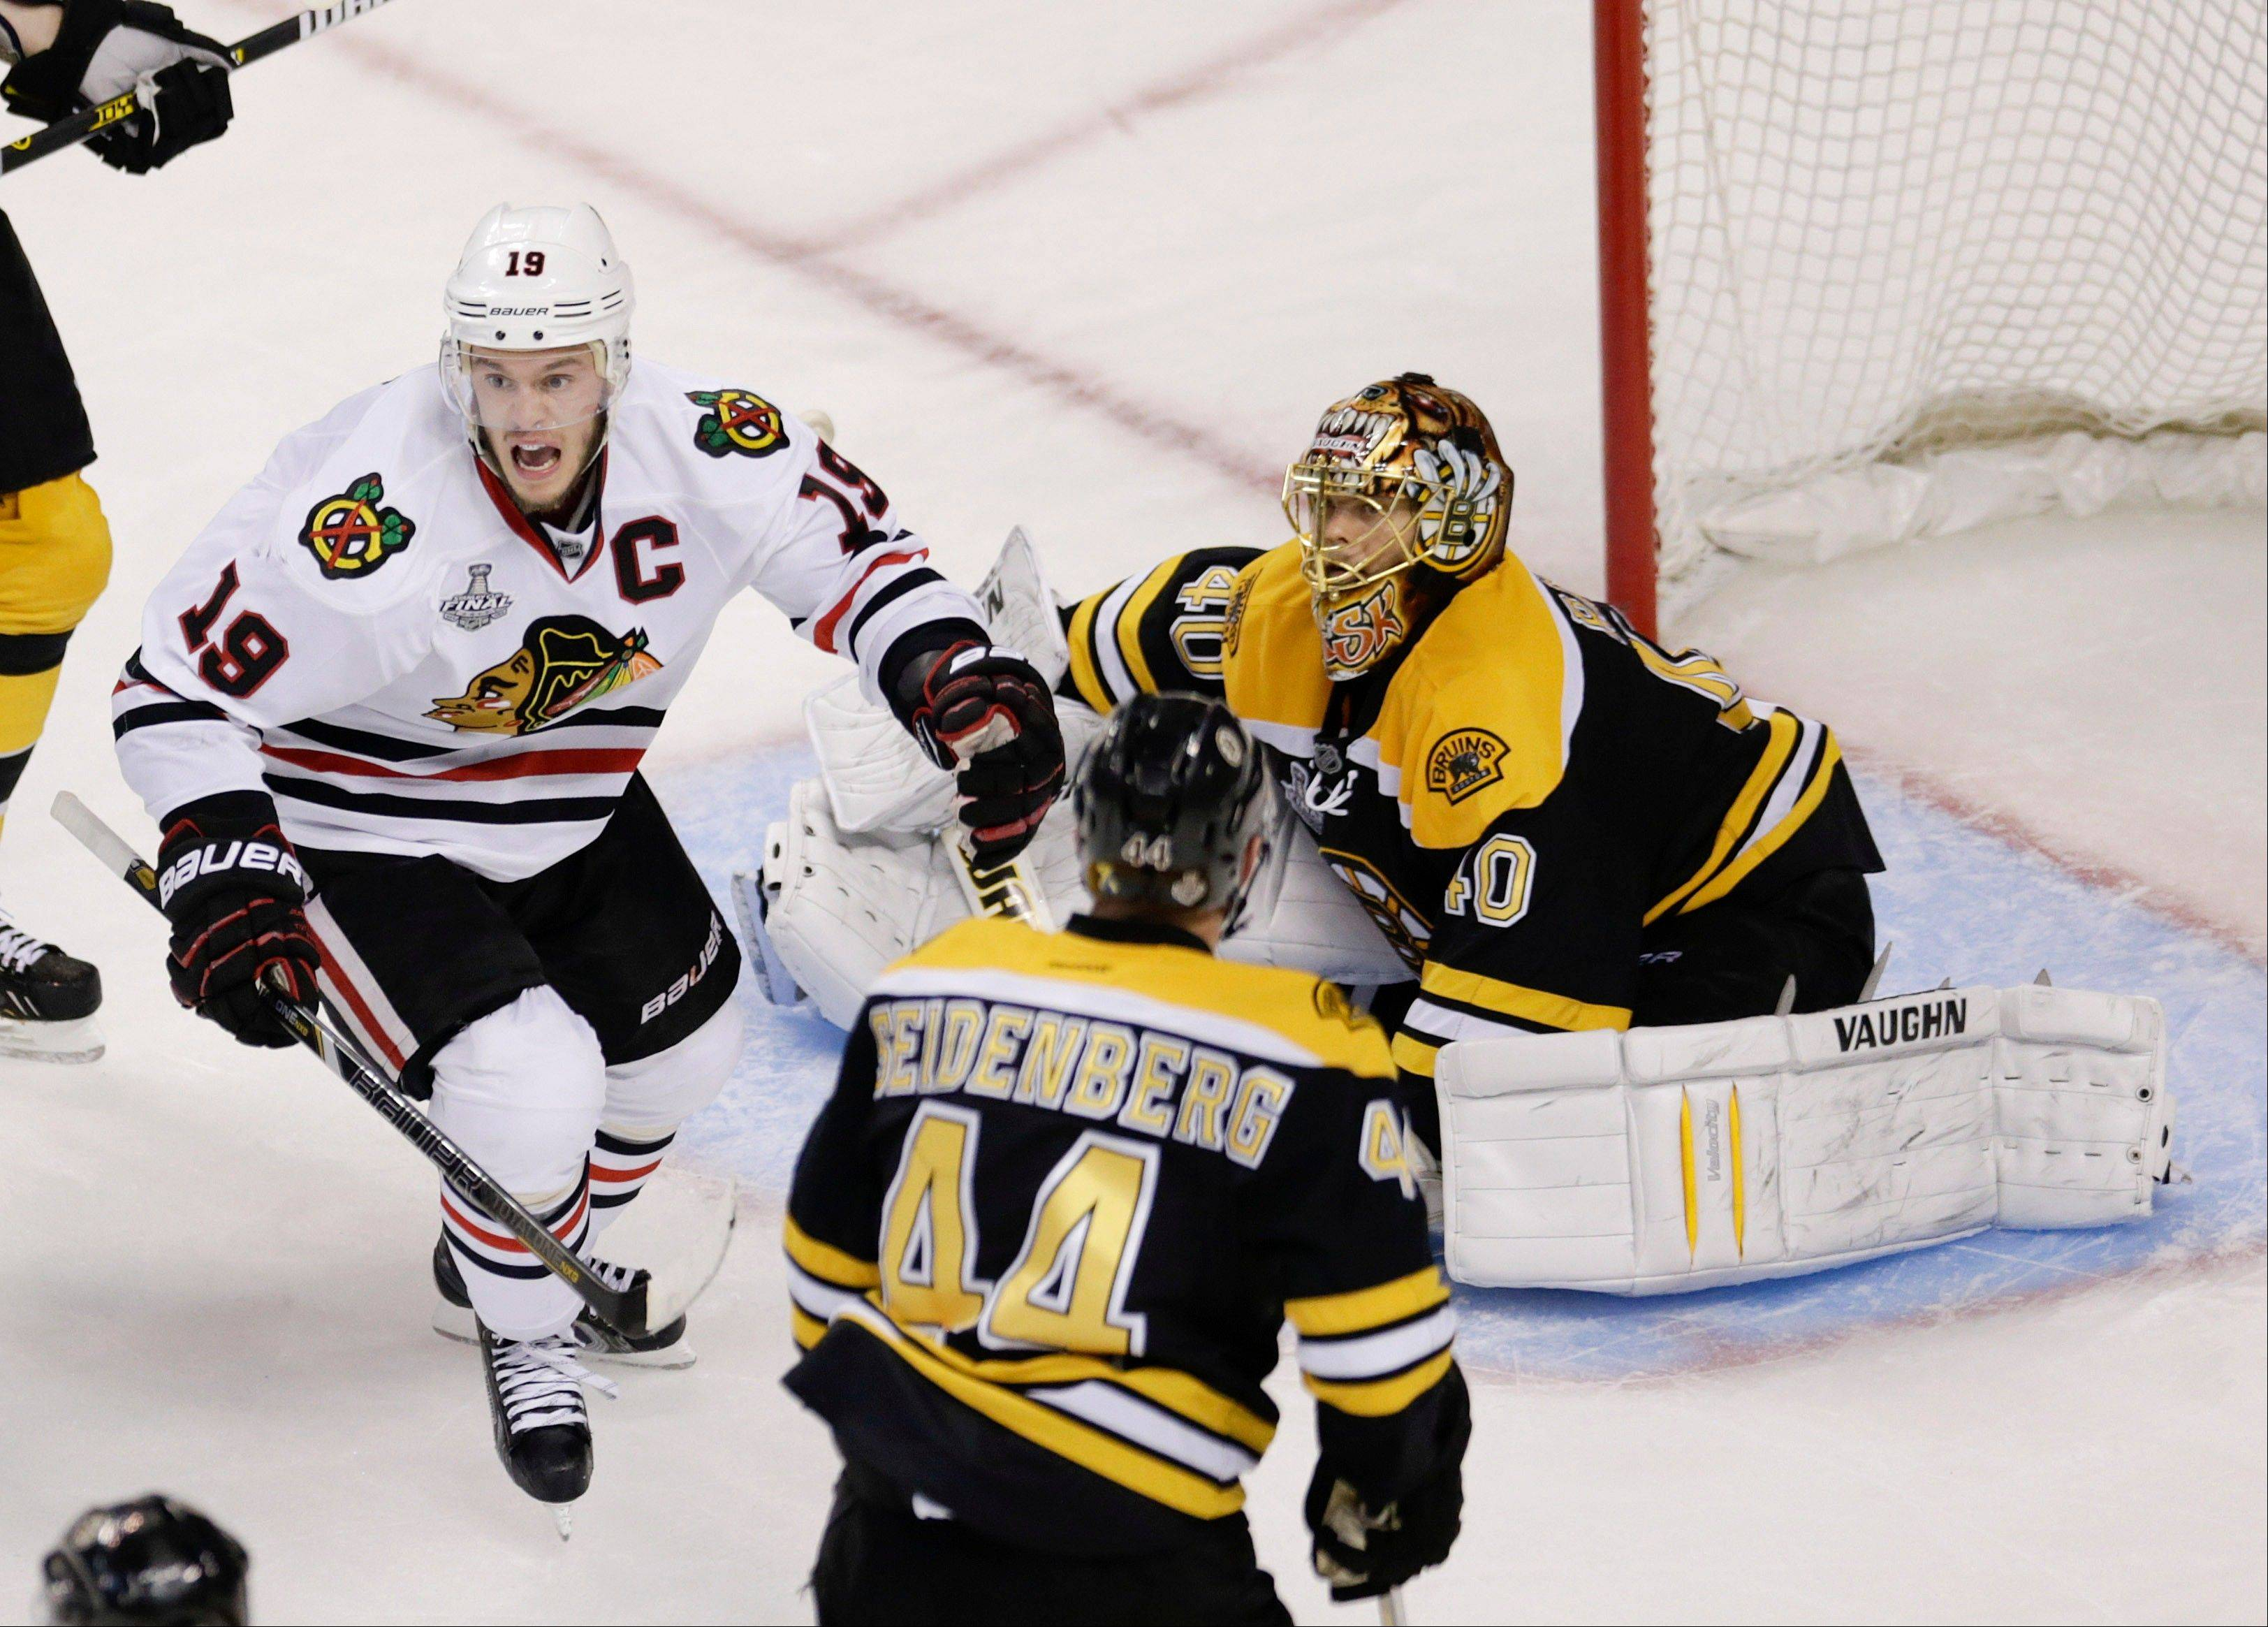 Chicago Blackhawks center Jonathan Toews (19) celebrates the winning goal by Brent Seabrook, not shown, against Boston Bruins goalie Tuukka Rask (40), of Finland, during the first overtime period in Game 4 of the NHL hockey Stanley Cup Finals.